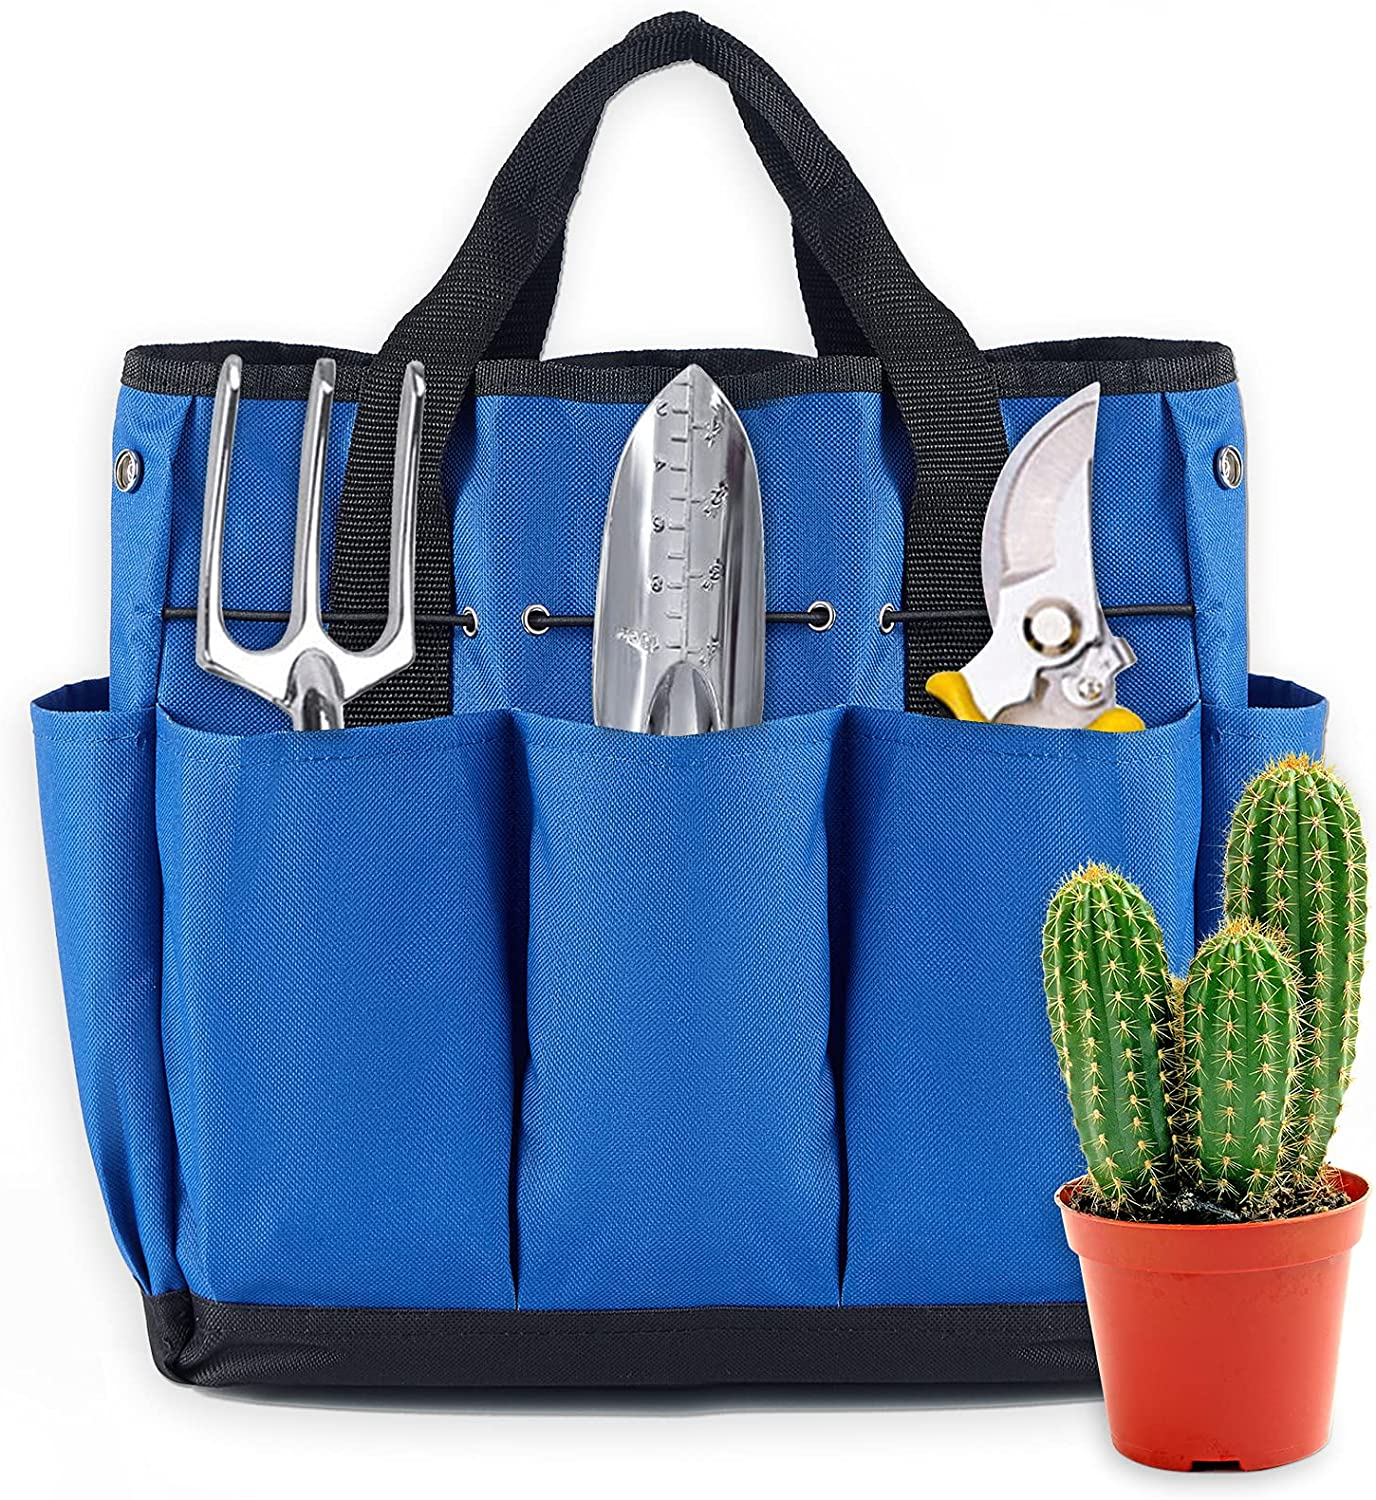 byhui Garden Brand new Tote Bag Large and outlet Organiz Tool Storage